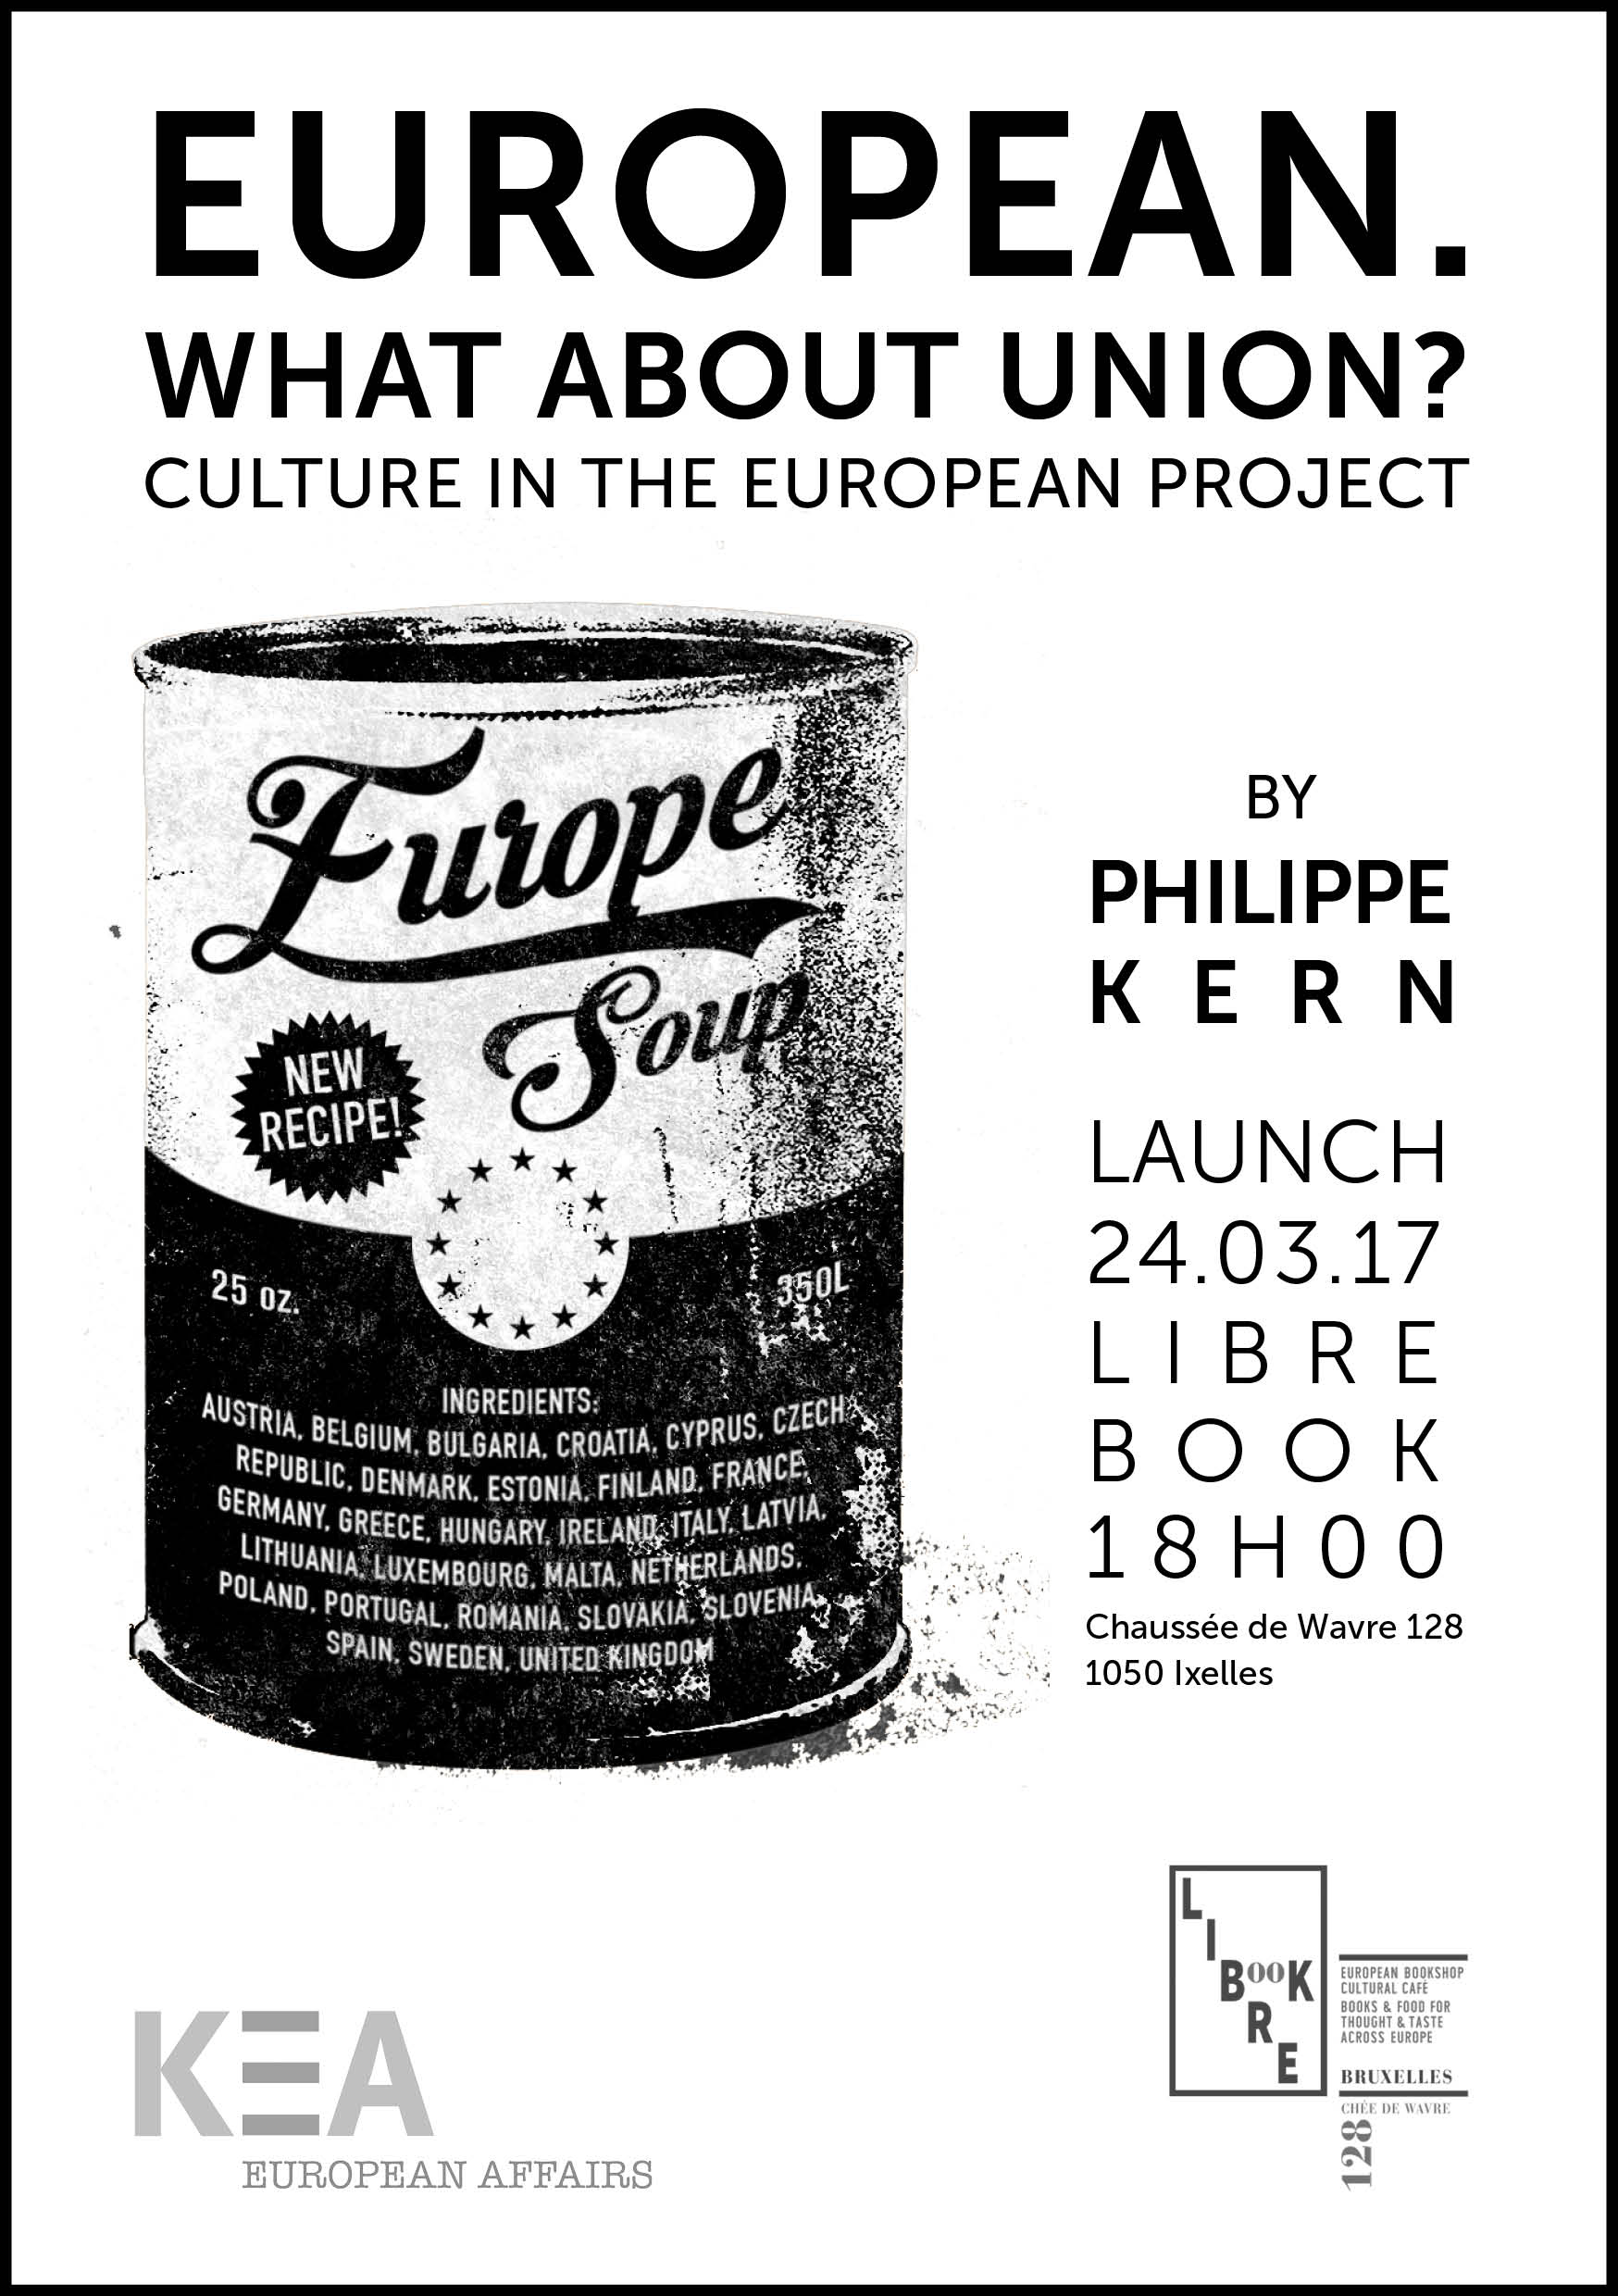 the role and impact of the european union since 1946 15 july 1980 women in south africa, since the turn of the century, have emerged as primary catalysts for protests the role of the role and impact of the european union since 1946 women in the struggle against apartheid 29-11-2017.